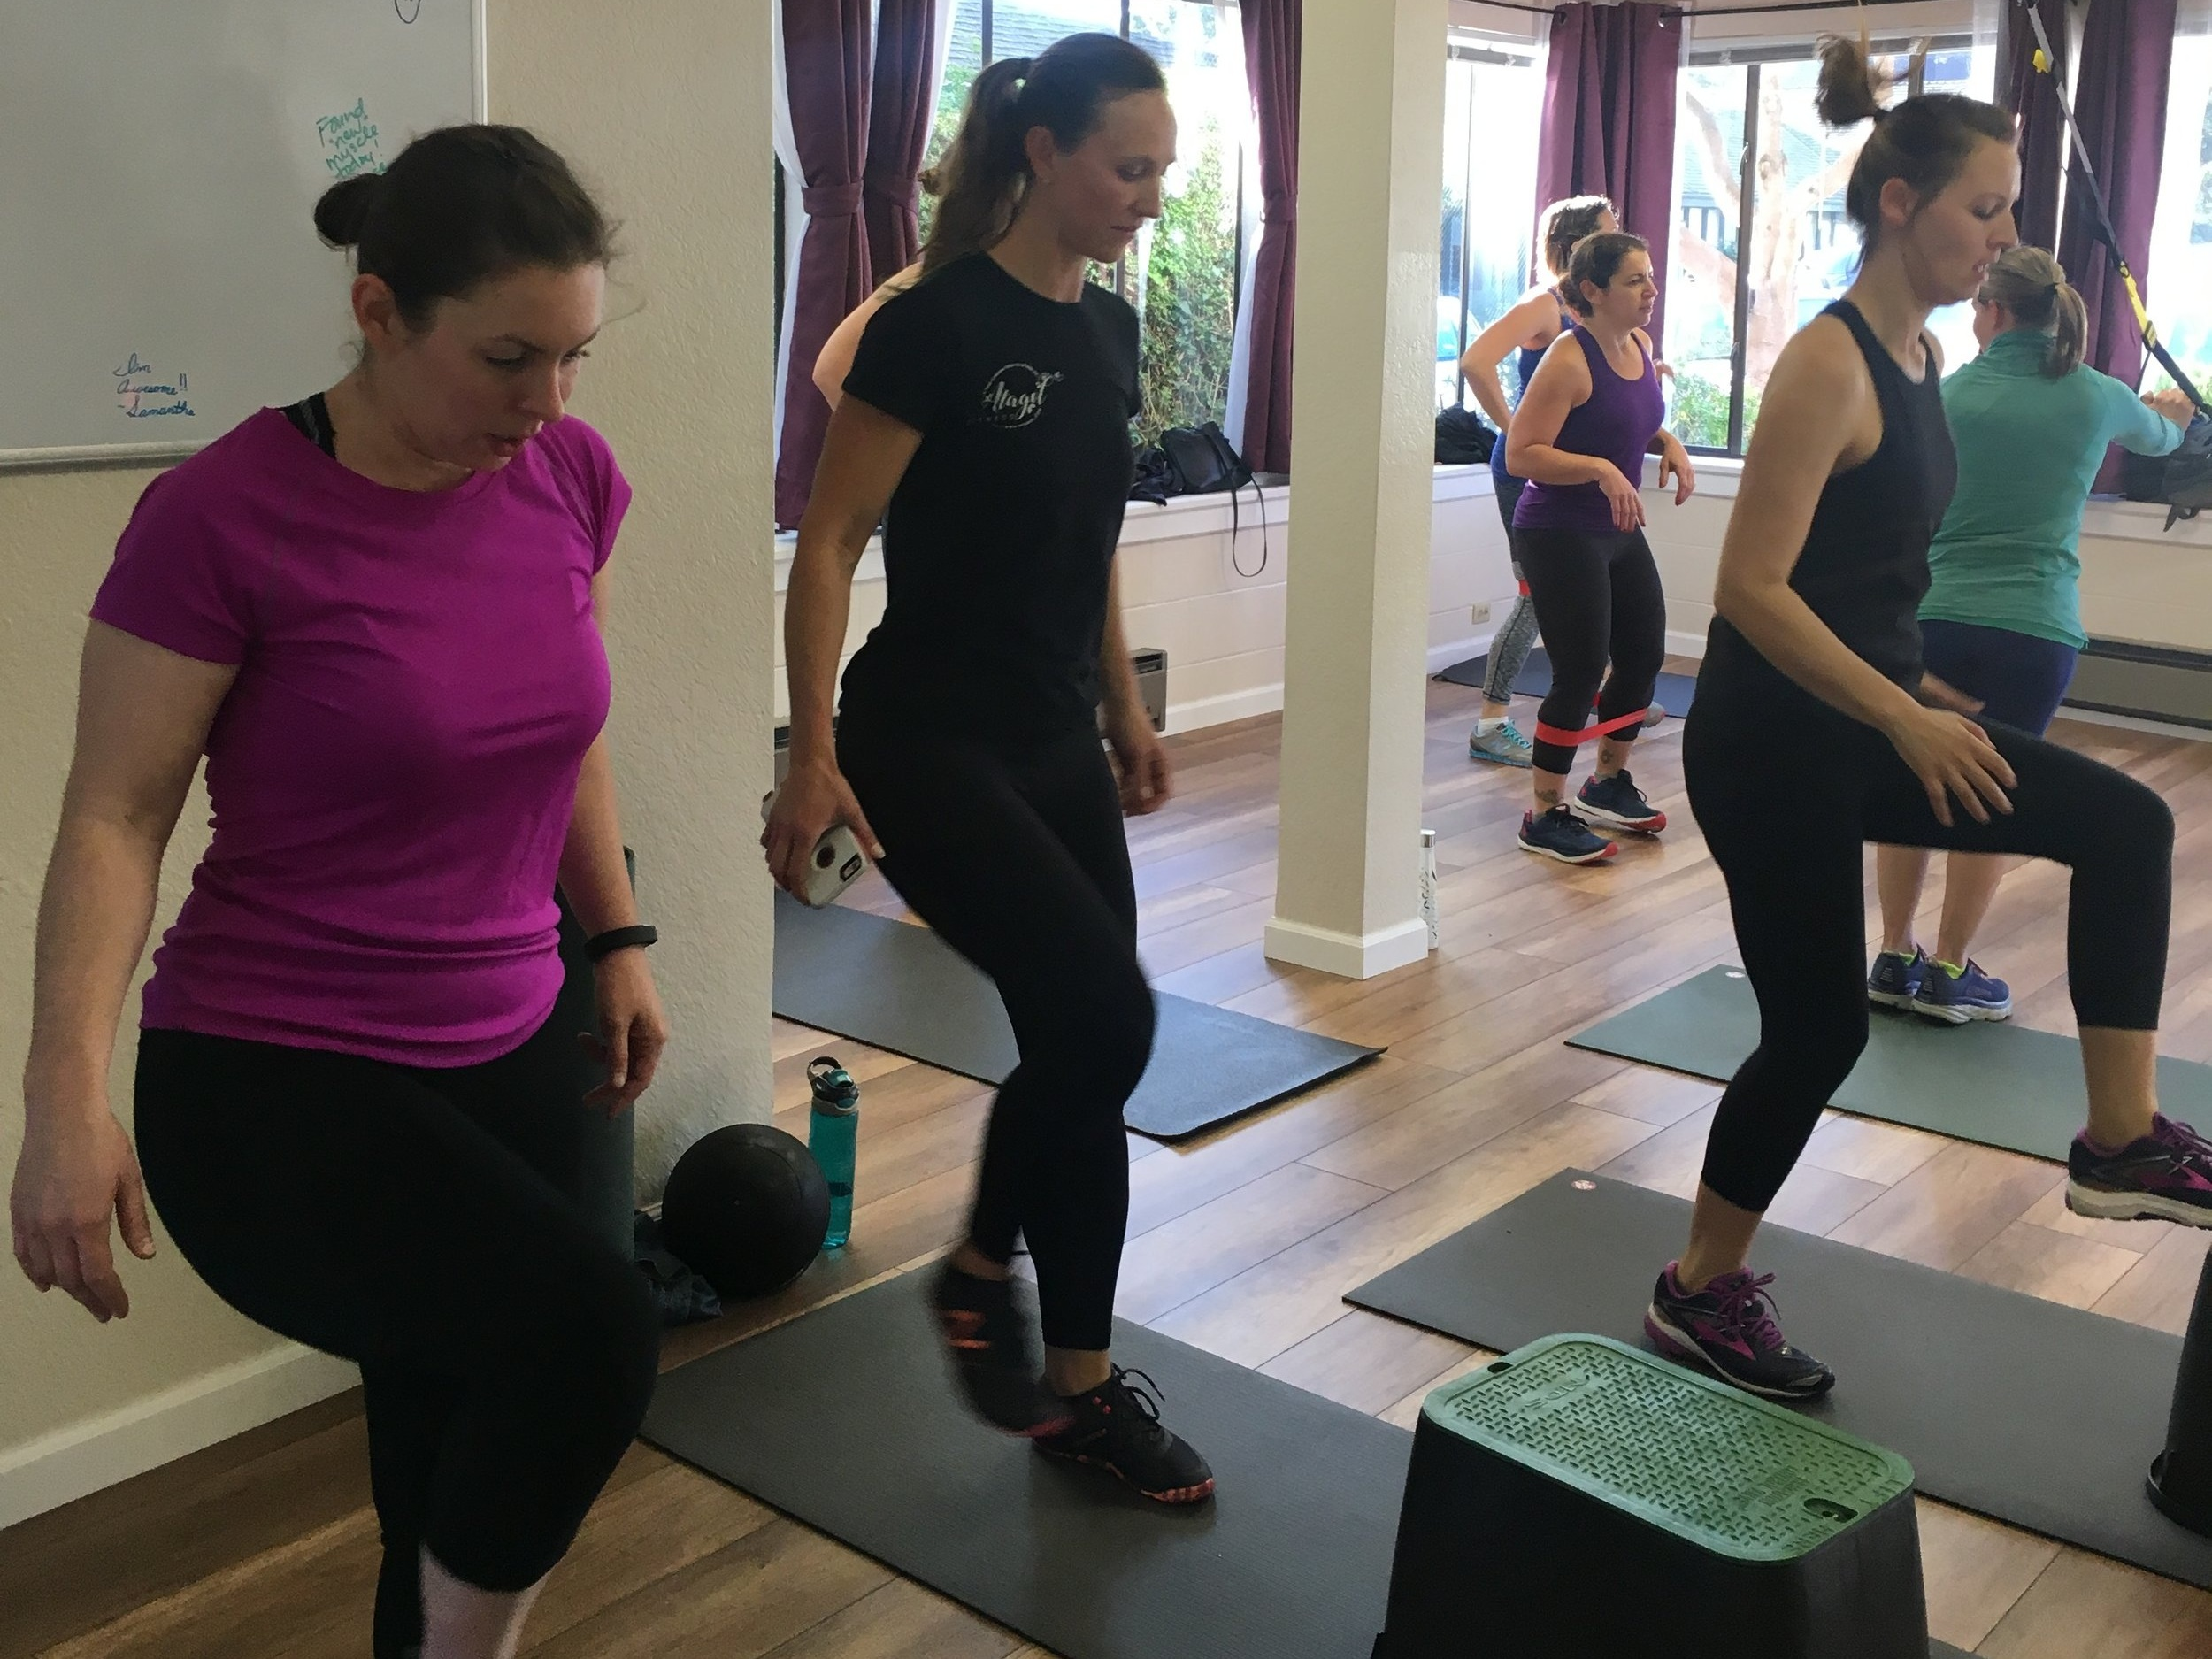 Small group coaching - Push your personal limits with the support of your team! Every session is uniquely designed to build strength in all planes of movement while improving your muscular endurance, stability and flexibility.